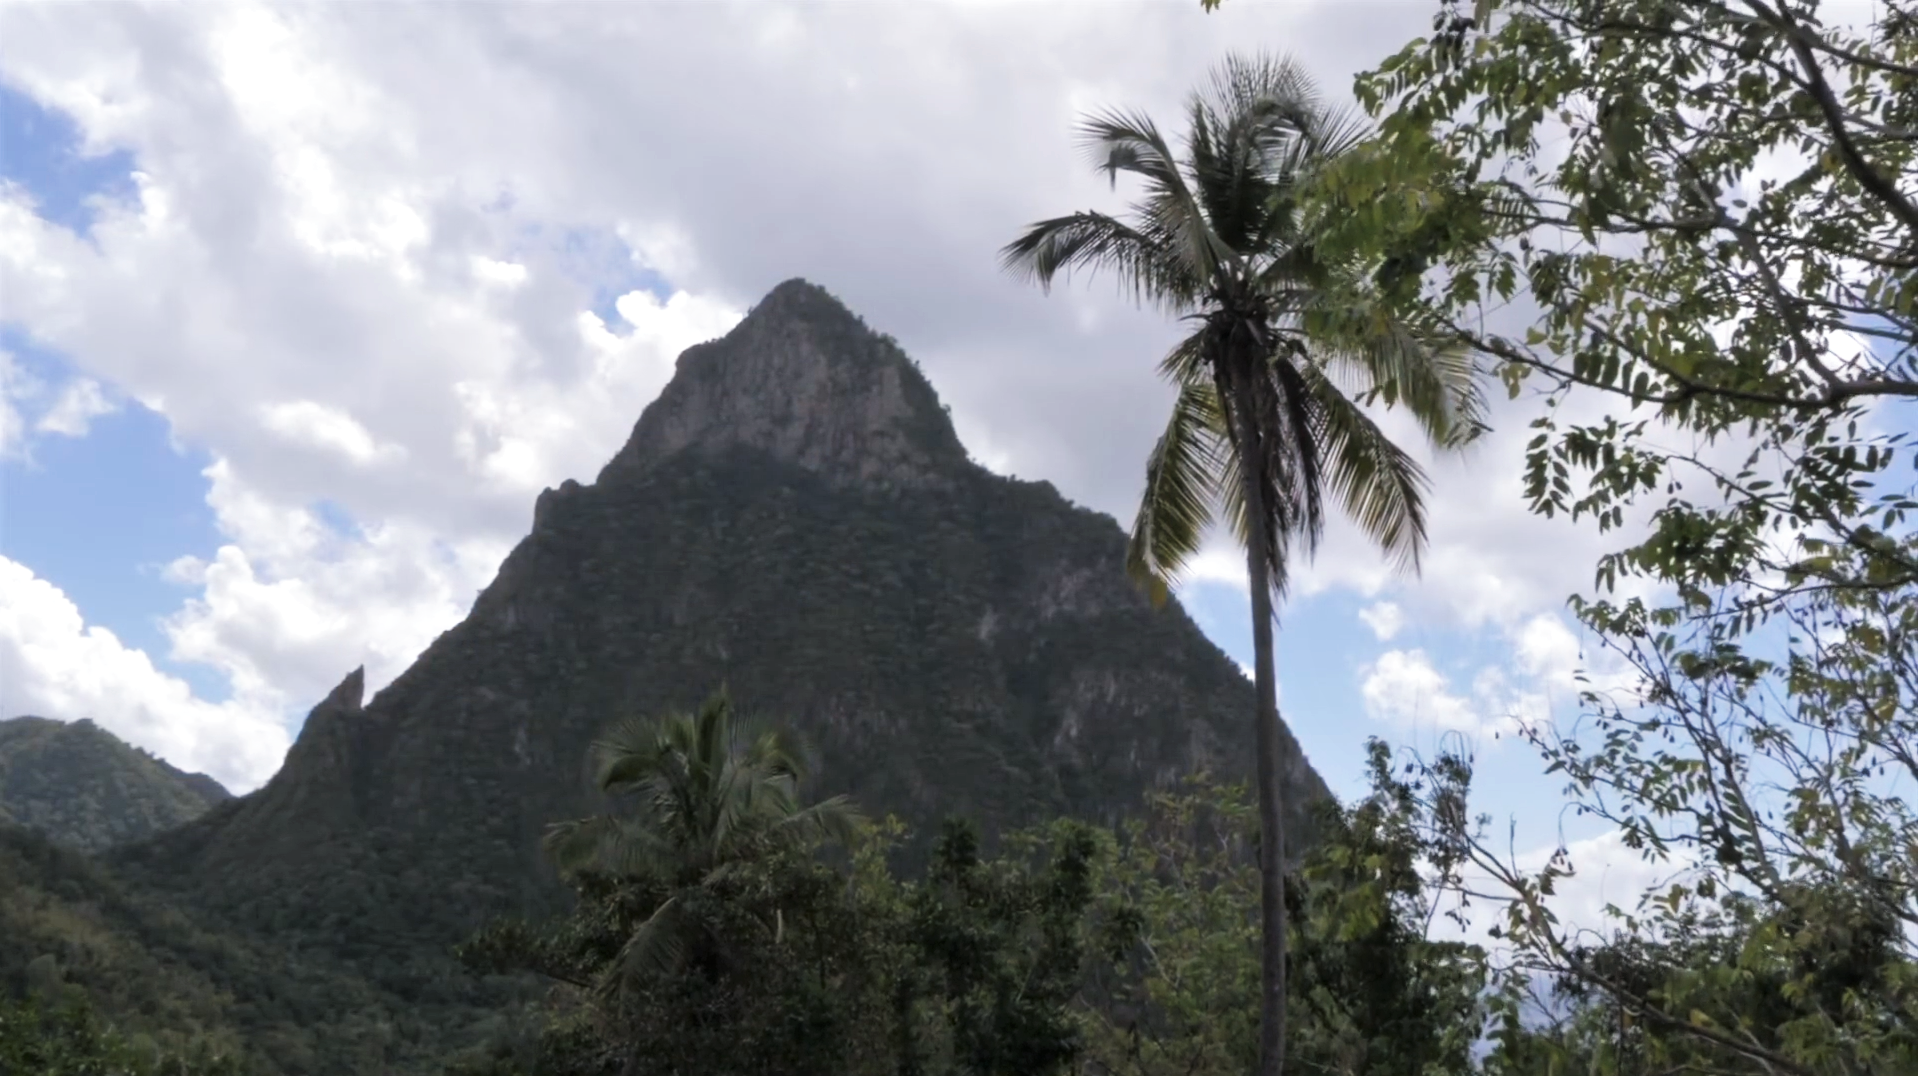 St. Lucia's Jade mountain rises in the background against a cloudy sky. Palm trees can be seen in the foreground.